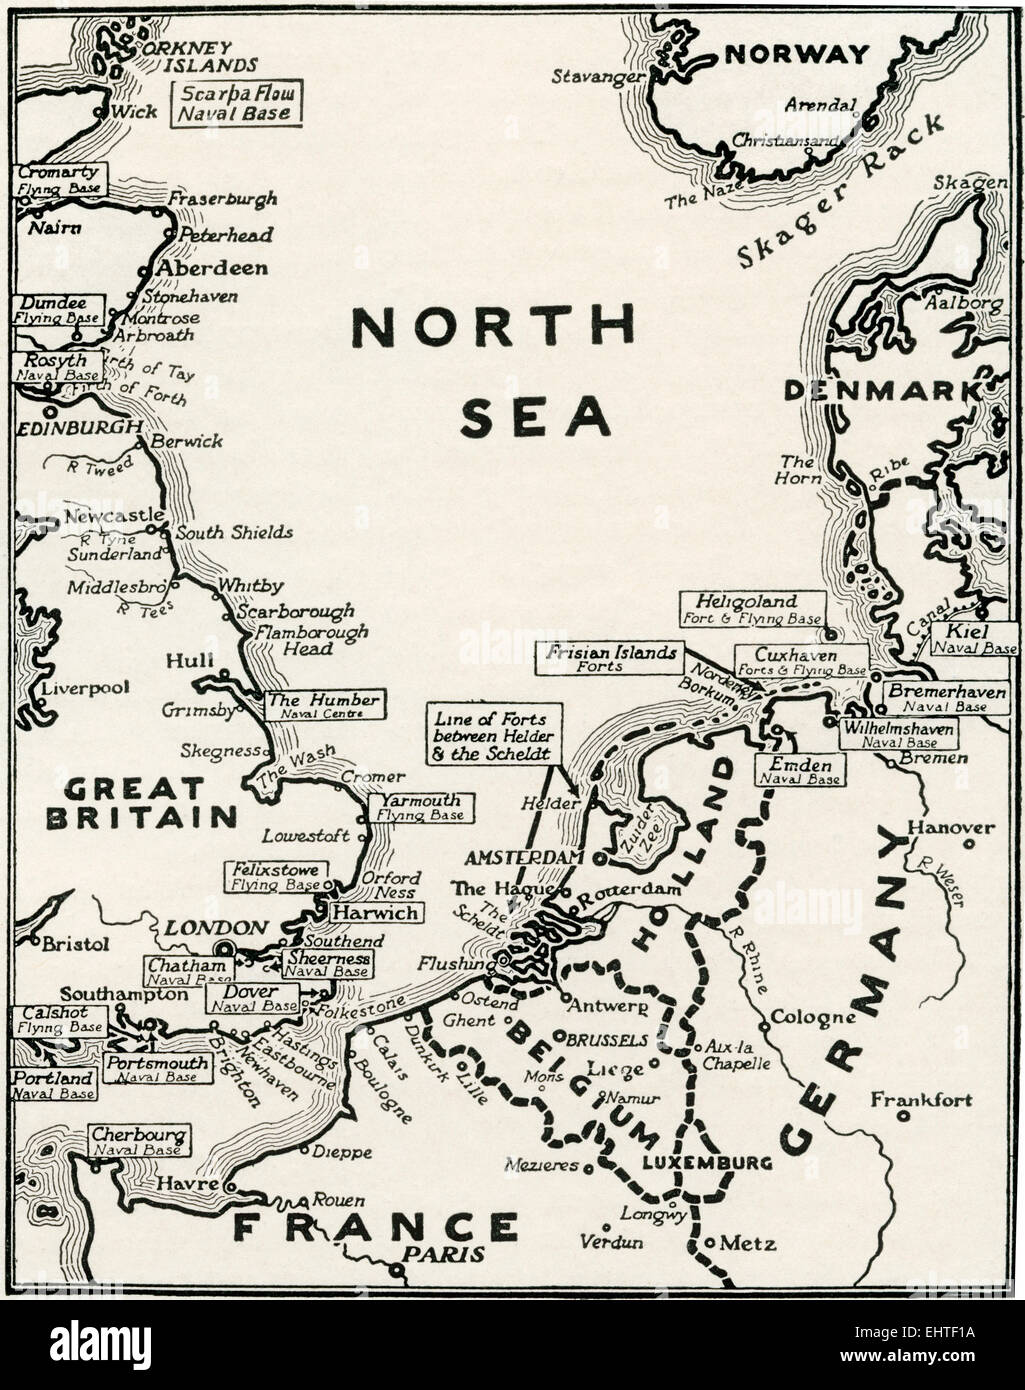 Map showing the naval bases of the north sea during world war one map showing the naval bases of the north sea during world war one gumiabroncs